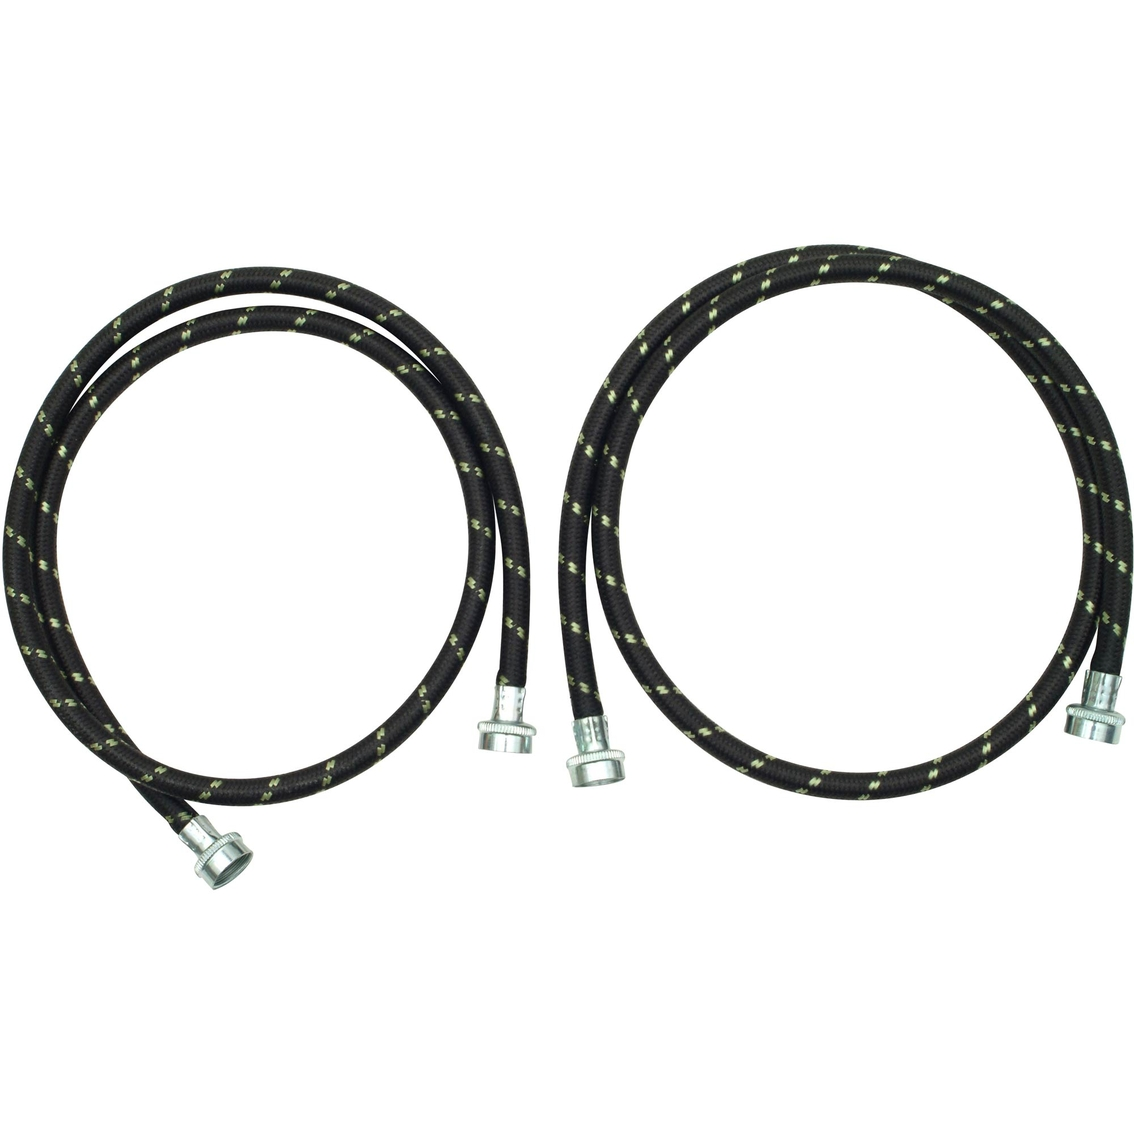 Whirlpool Washer Inlet Hose Kit